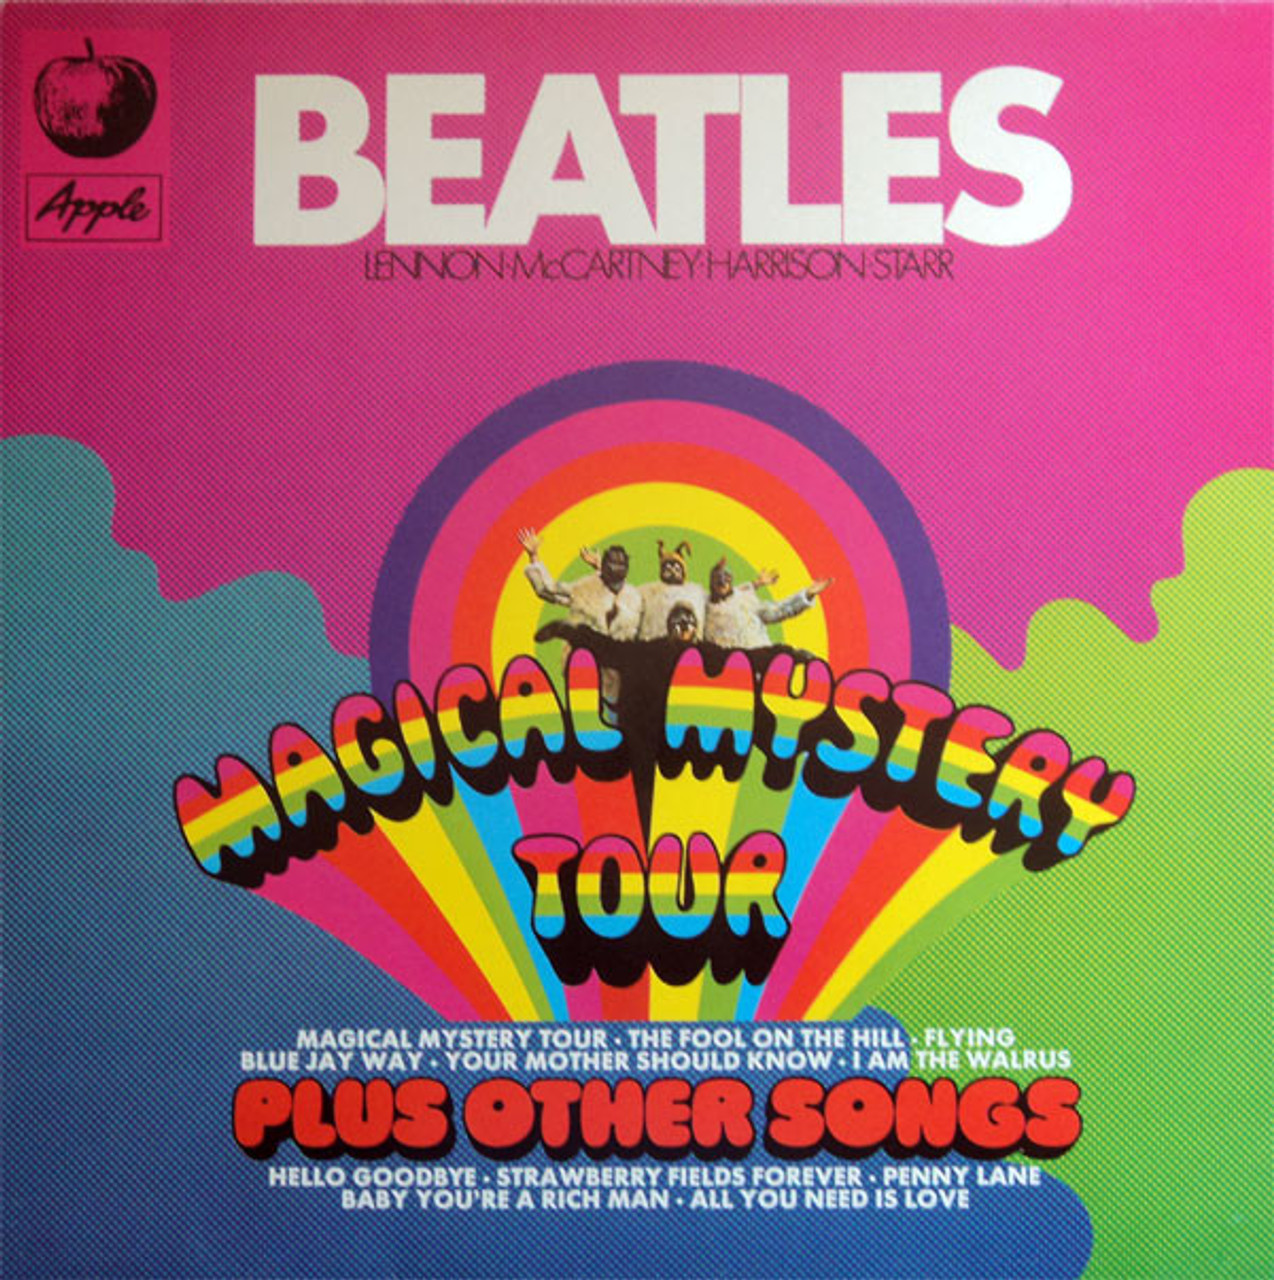 the beatles magical mystery tour plus other songs yellow vinyl lp planetmusic33. Black Bedroom Furniture Sets. Home Design Ideas